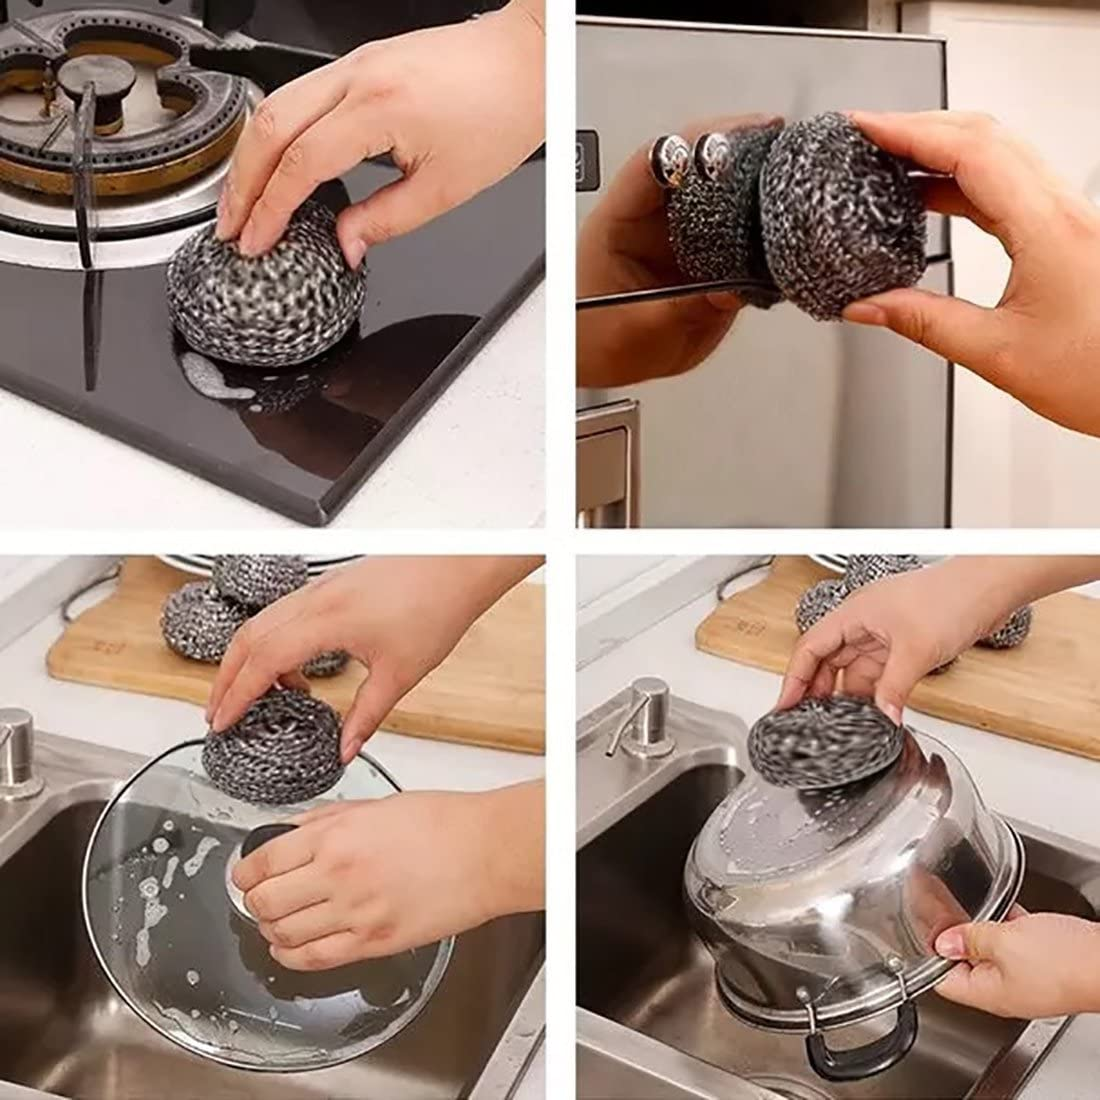 Stainless Steel Scourer-Kitchen Stainless Steel Sponge Scrubbers for Our Kitchen Pots and Pans Cleaning 40g 3